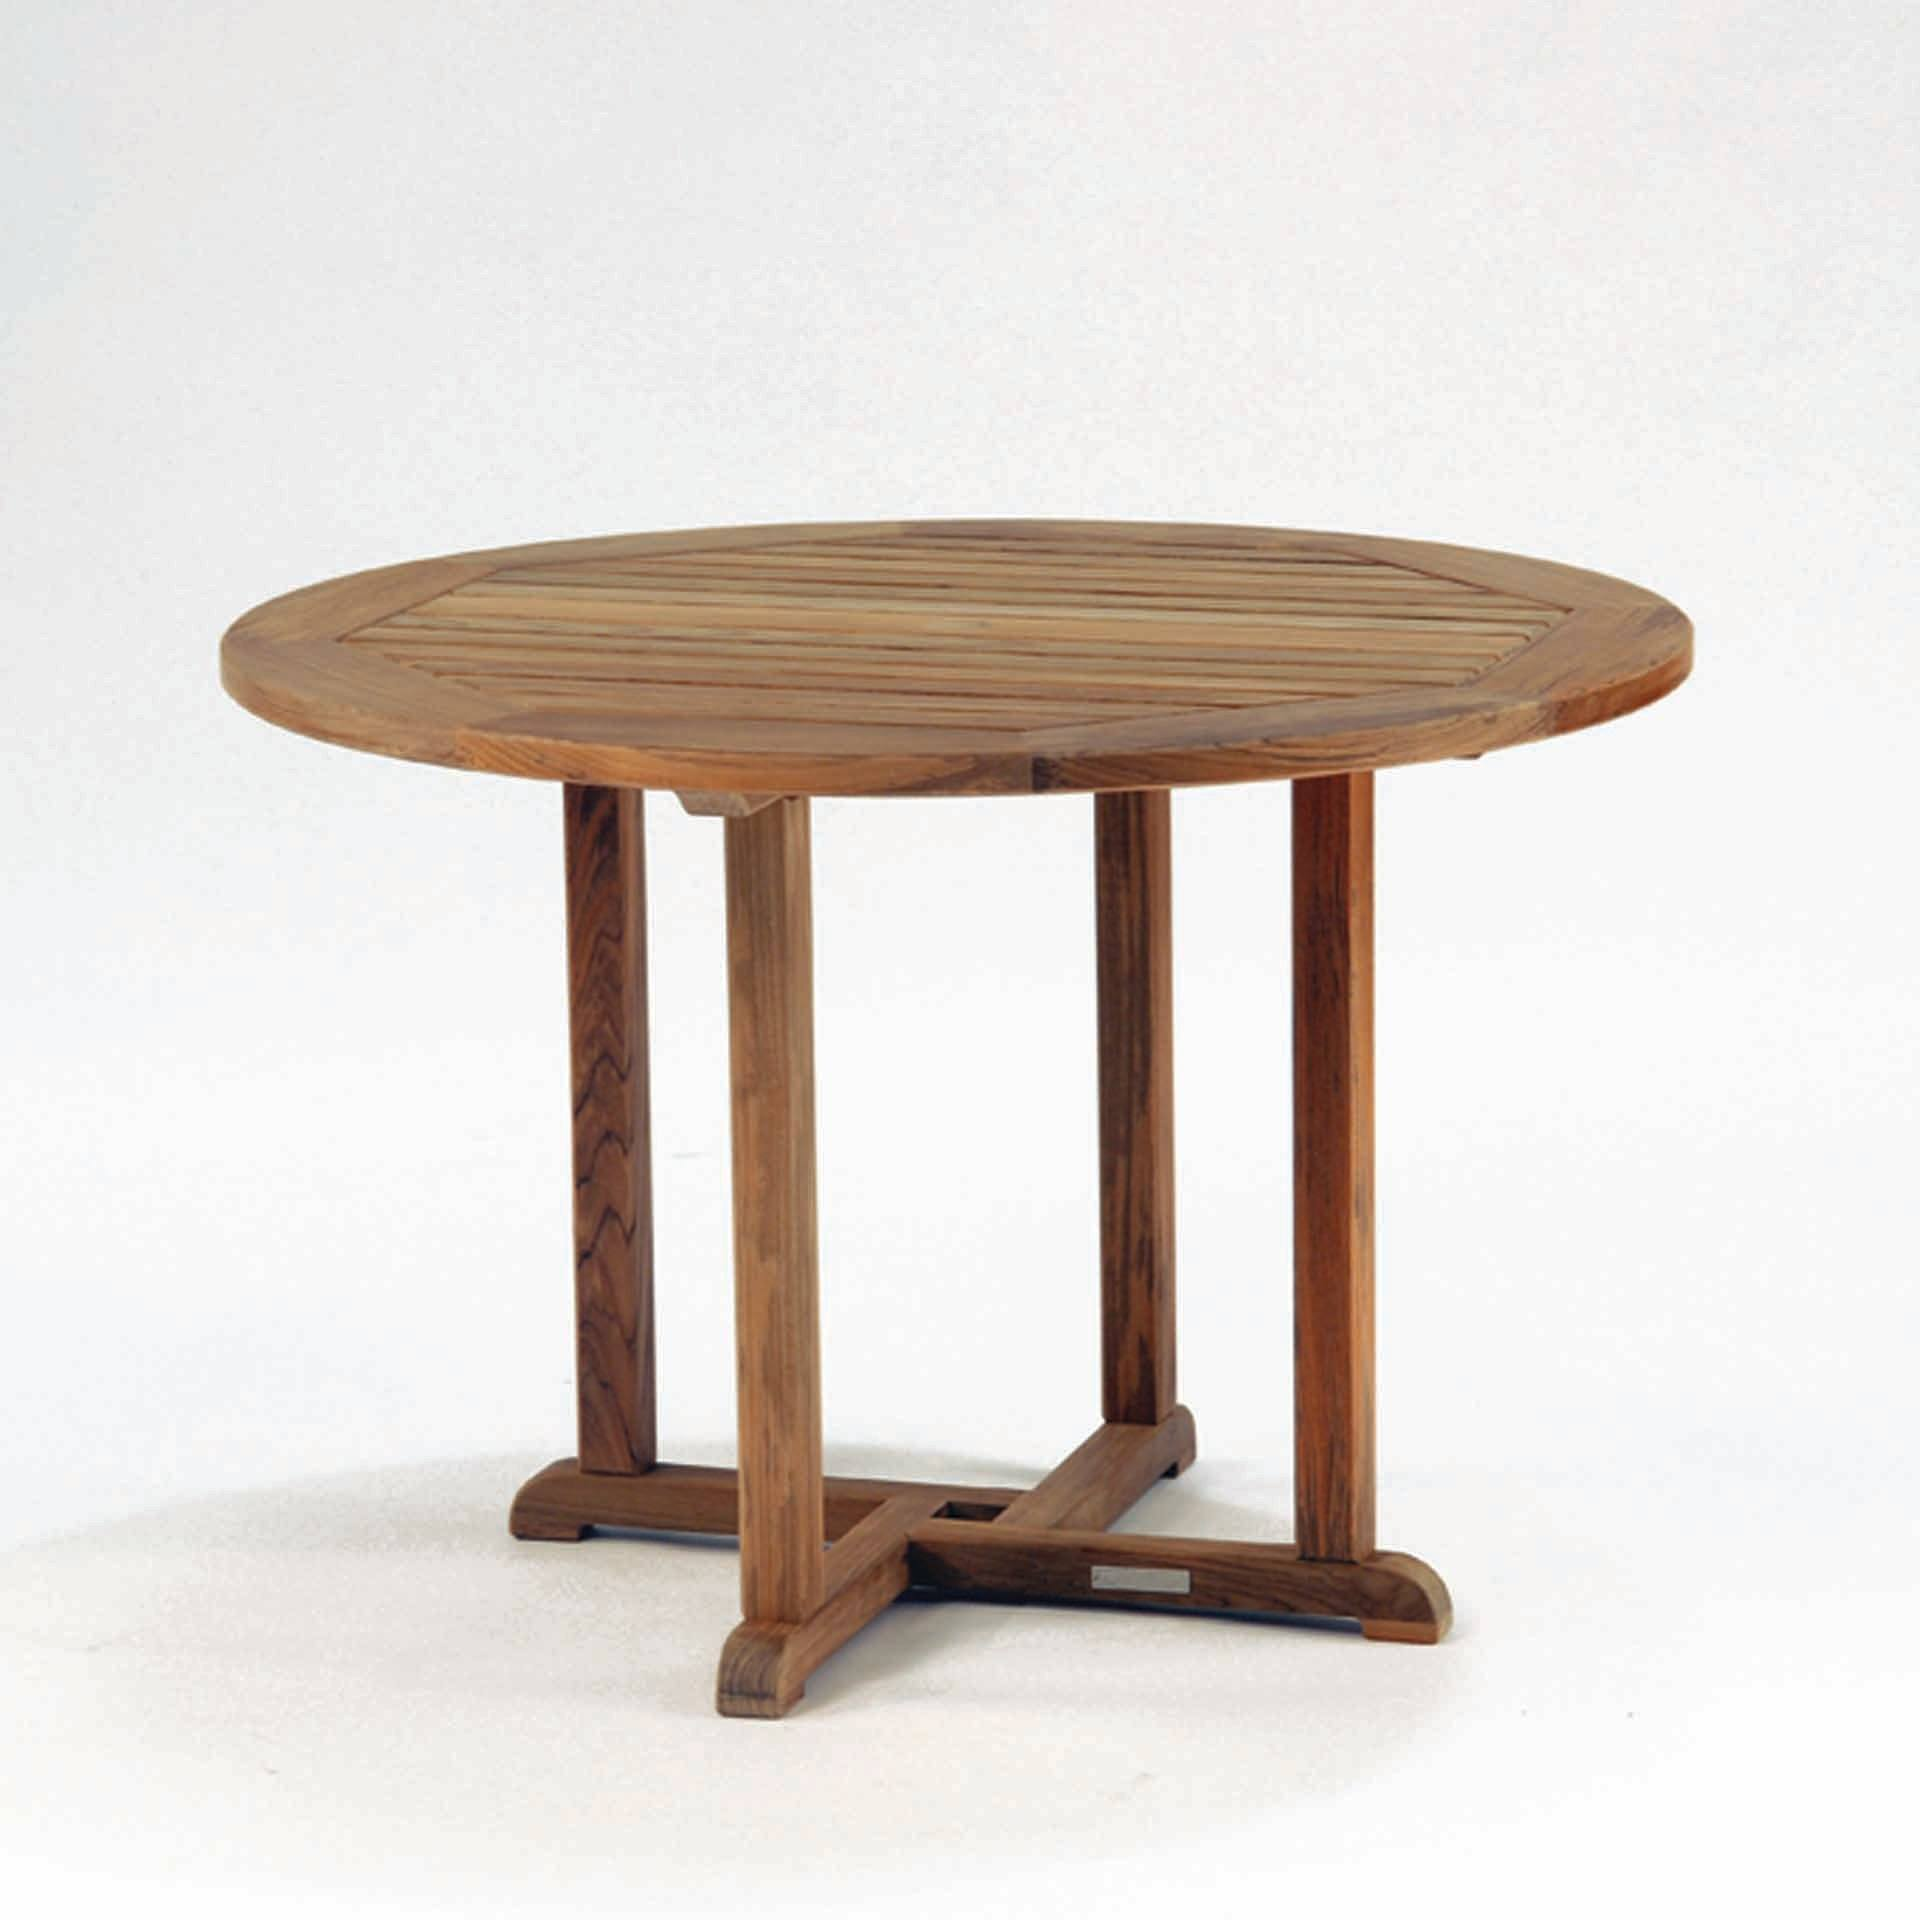 Kingsley Bate Essex 42quot Round Dining Table Leisure Living : Kingsley Bate Essex 42 Round Dining Table from www.leisurelivinginc.com size 1920 x 1920 jpeg 81kB